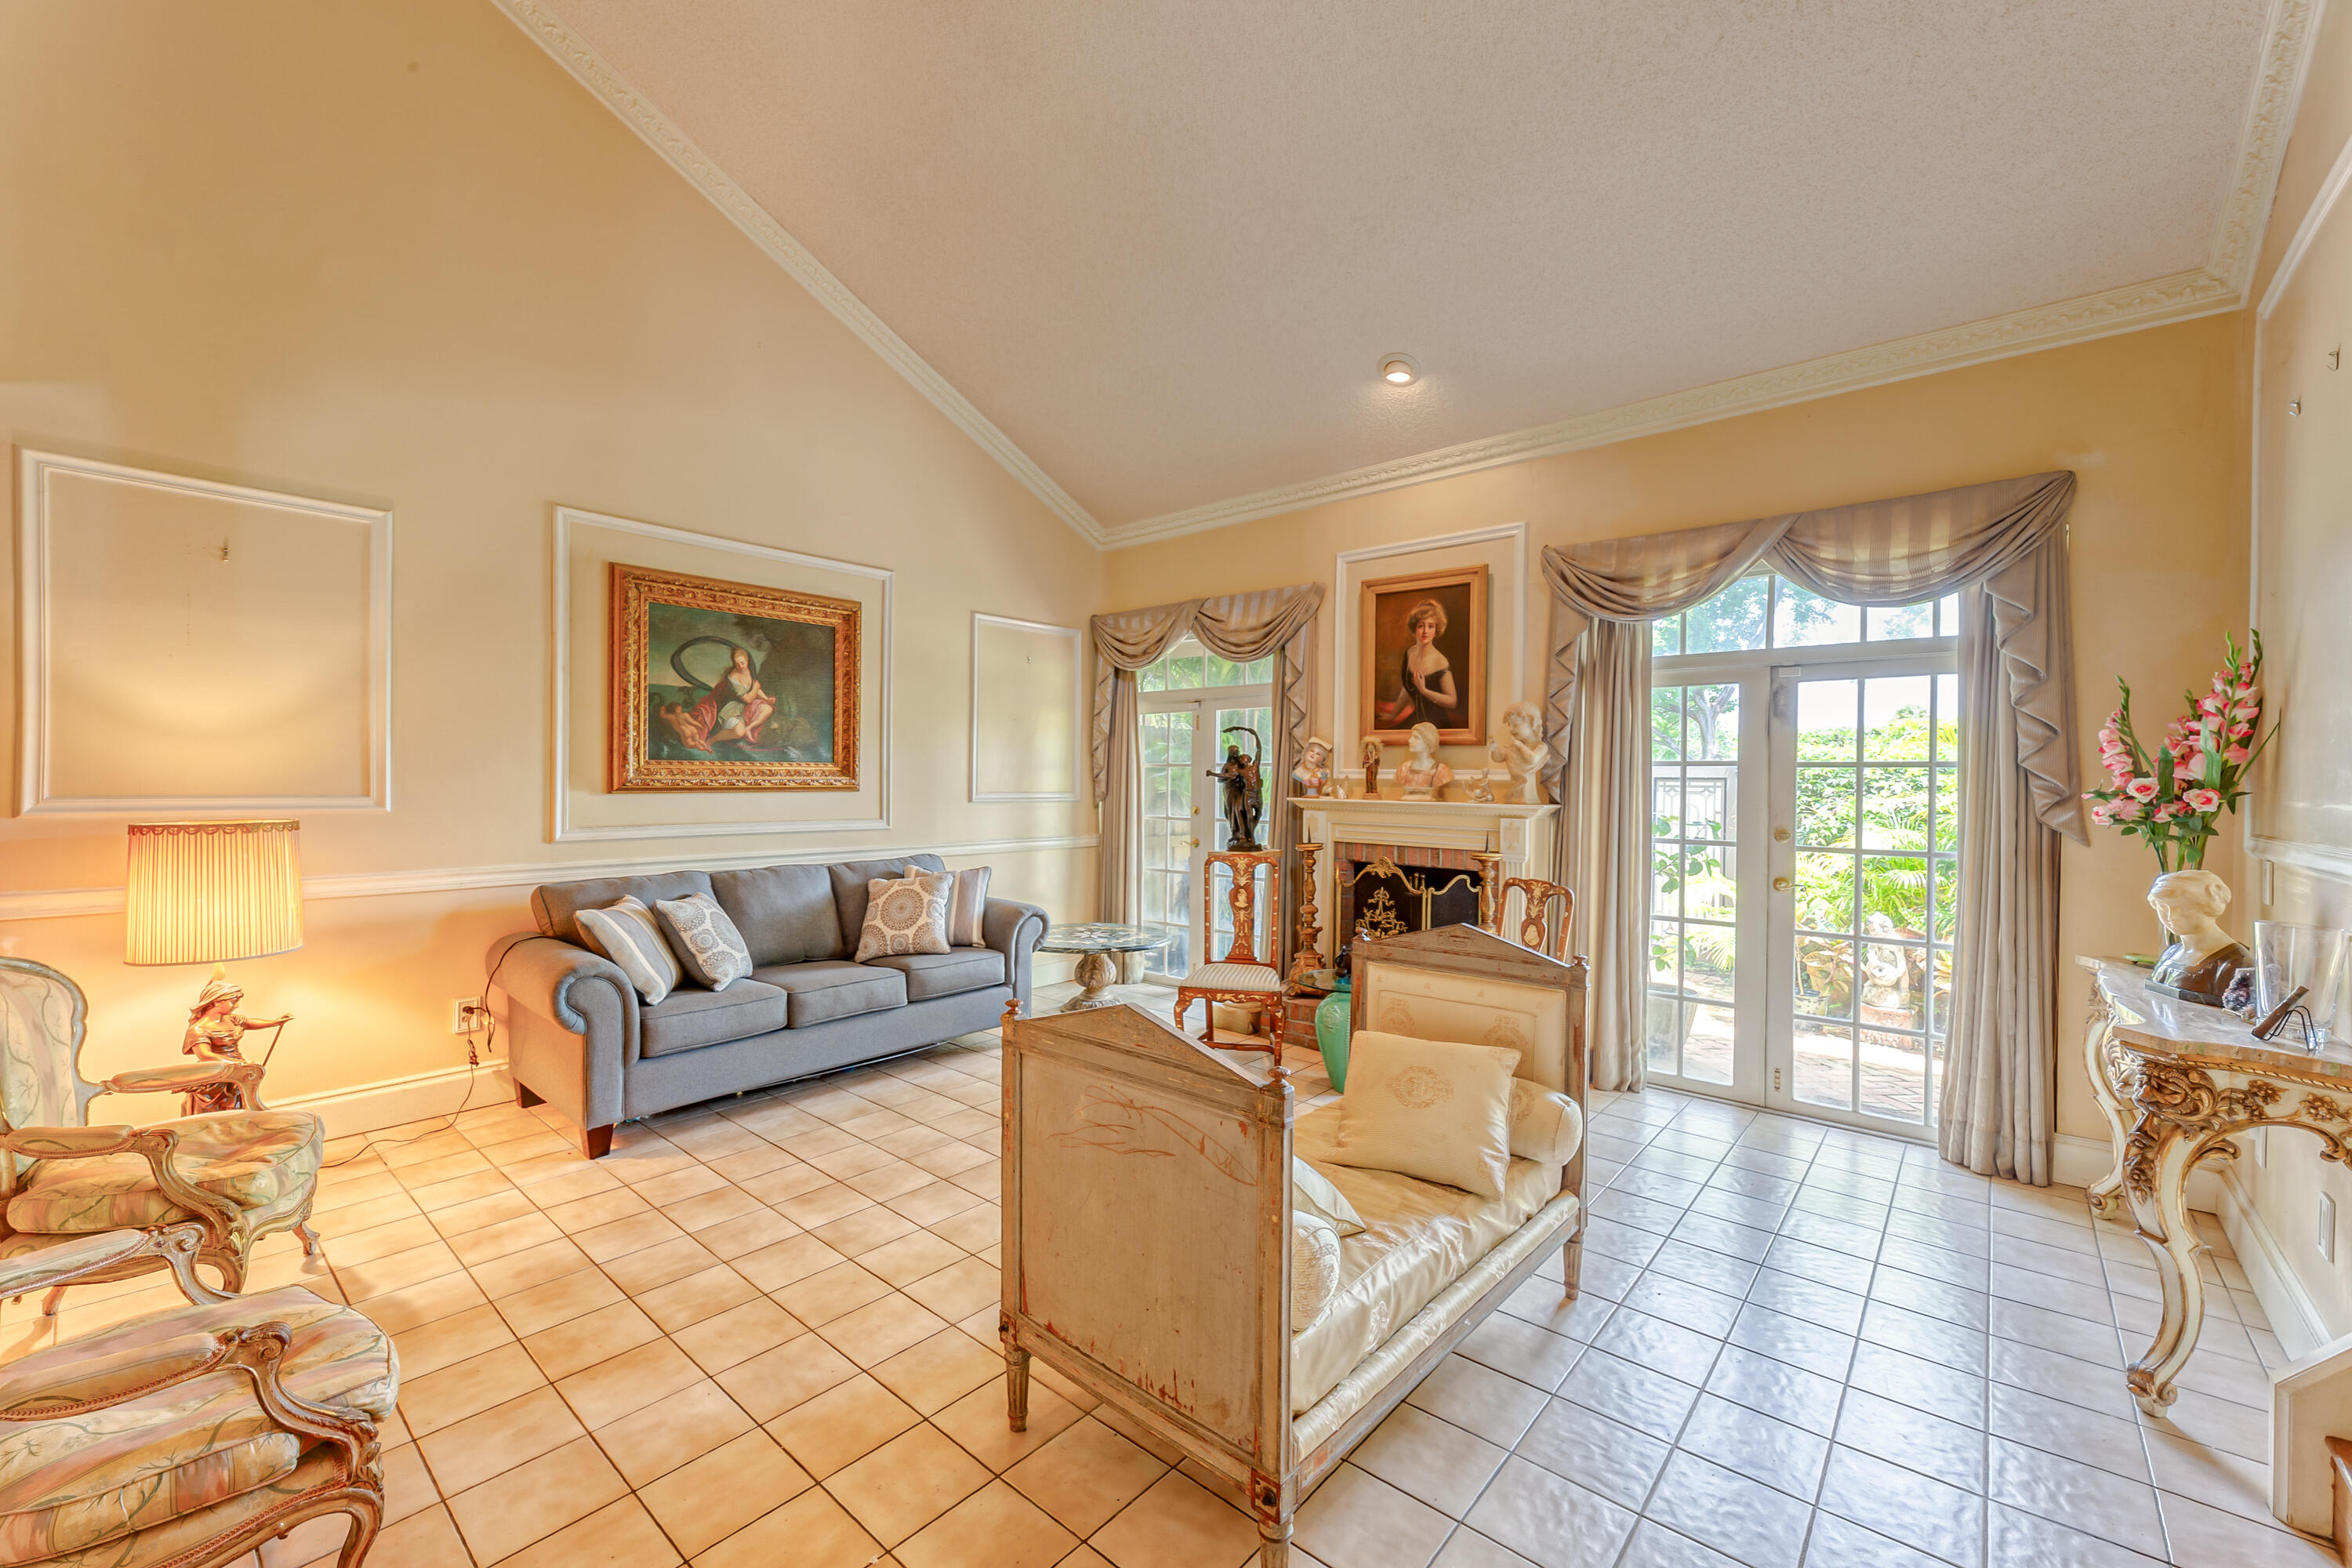 Townhouse in Sierra Del Mar. Largest fl. plan w/ pool on the lake.  4BED/ 2 1/2 BATHS...Portion of large upstairs loft  made into a 4th bdrm with w/w closet.  2 car gar.1911 s.f. under a/c. LR has vaulted ceilings & a fireplace. No carpet..1st fl. all tile, stairs & second floor all hardwood.   French doors from kit take you to the pool with new pump.French doors in living room take you to the patio w/ Chicago brick.  Gate on back patio opens to the lake with a great view of the fountain. Kit. is 10 yrs. Lots of closets & storage.  Updated baths with designer fixtures.  Crown moulding.  BDRM 2 & 3 have sliding doors leading to an upper open deck overlooking the pool. Accordian shutters & hurricane windows. Del Prado Elem. Walking distance t